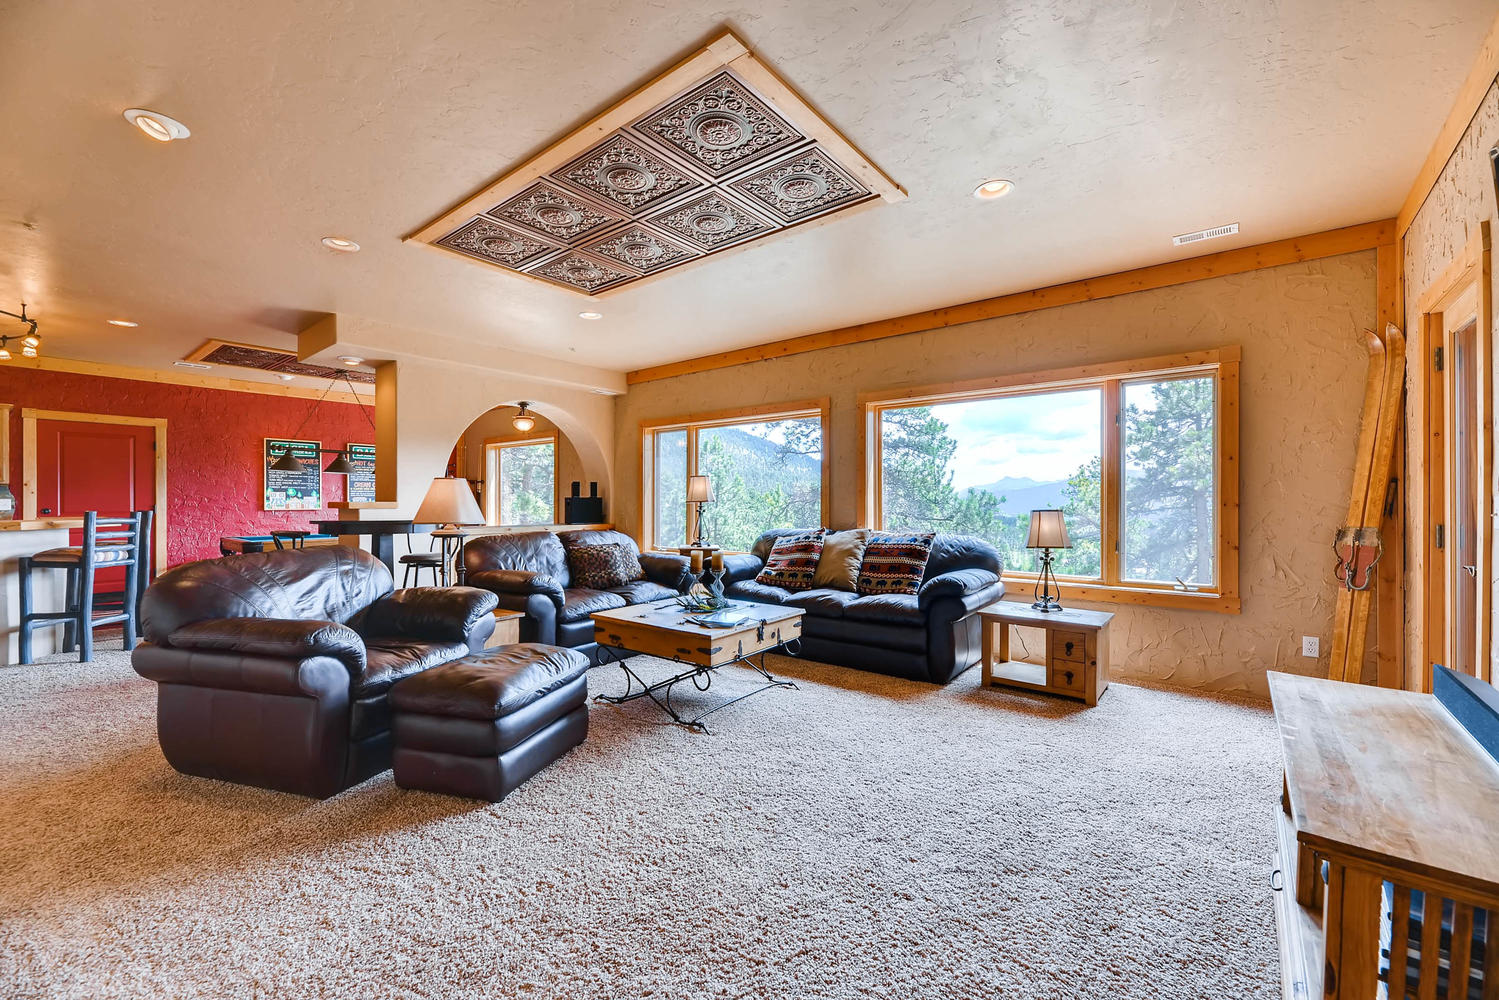 The lower level living room is comfy and an awesome hangout area.